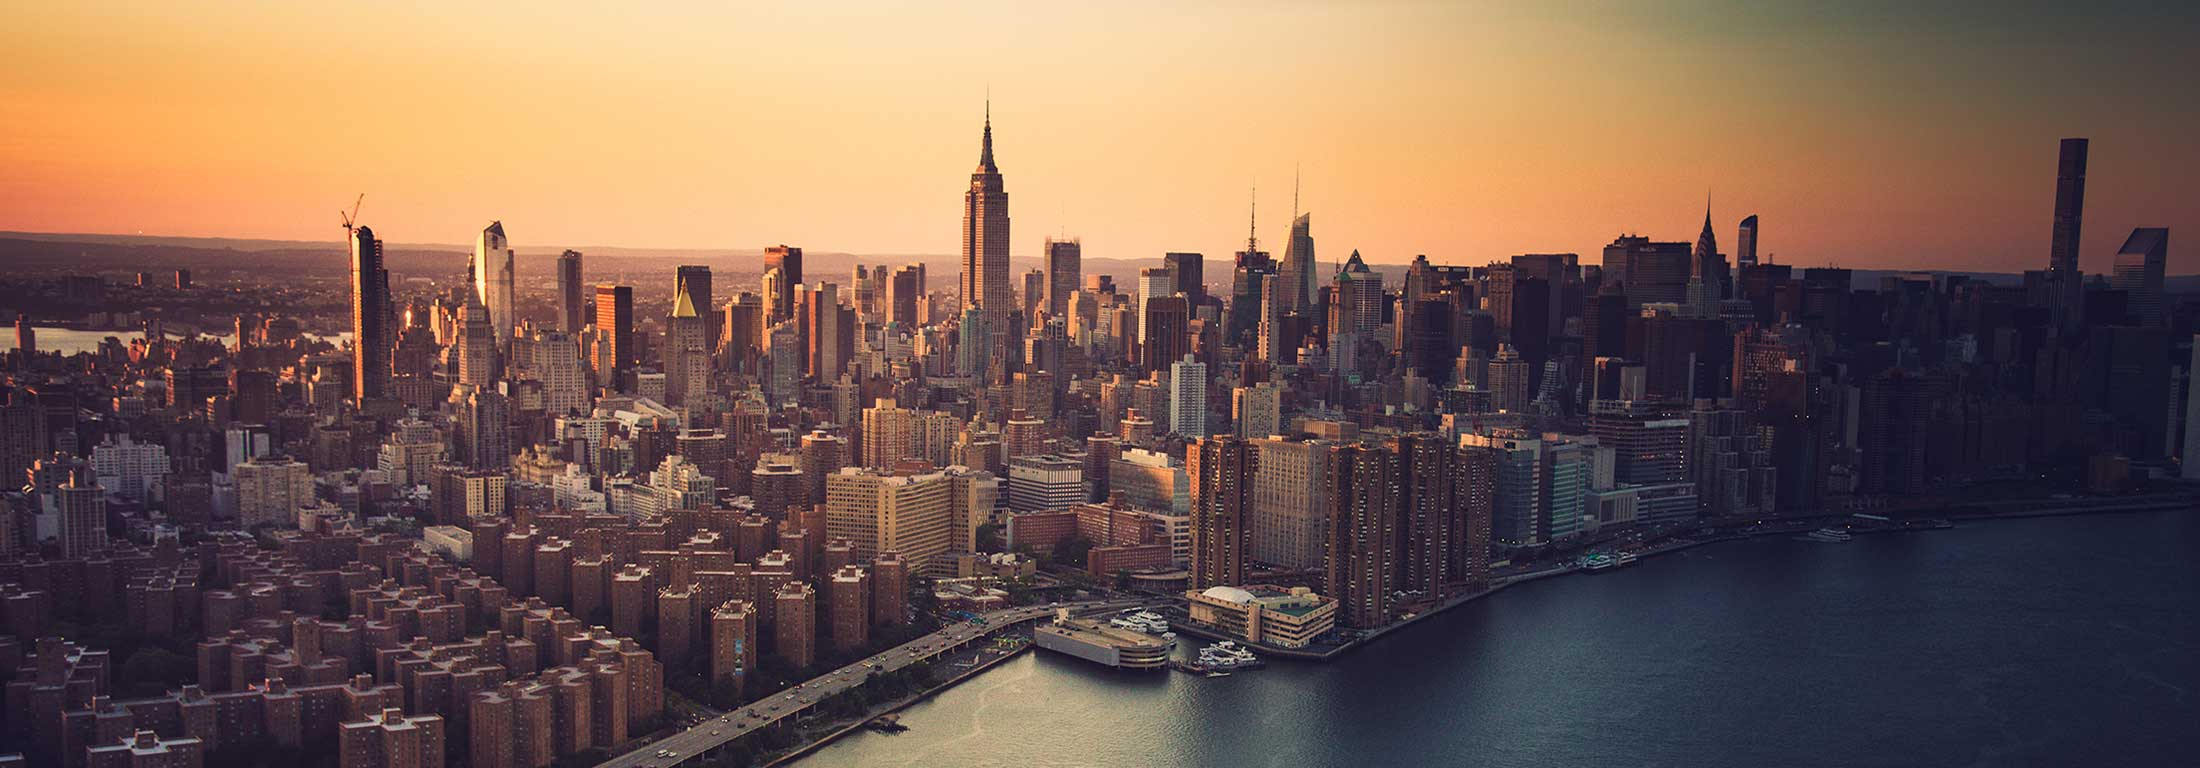 Aerial view of Manhattan with crisp orange sunrise